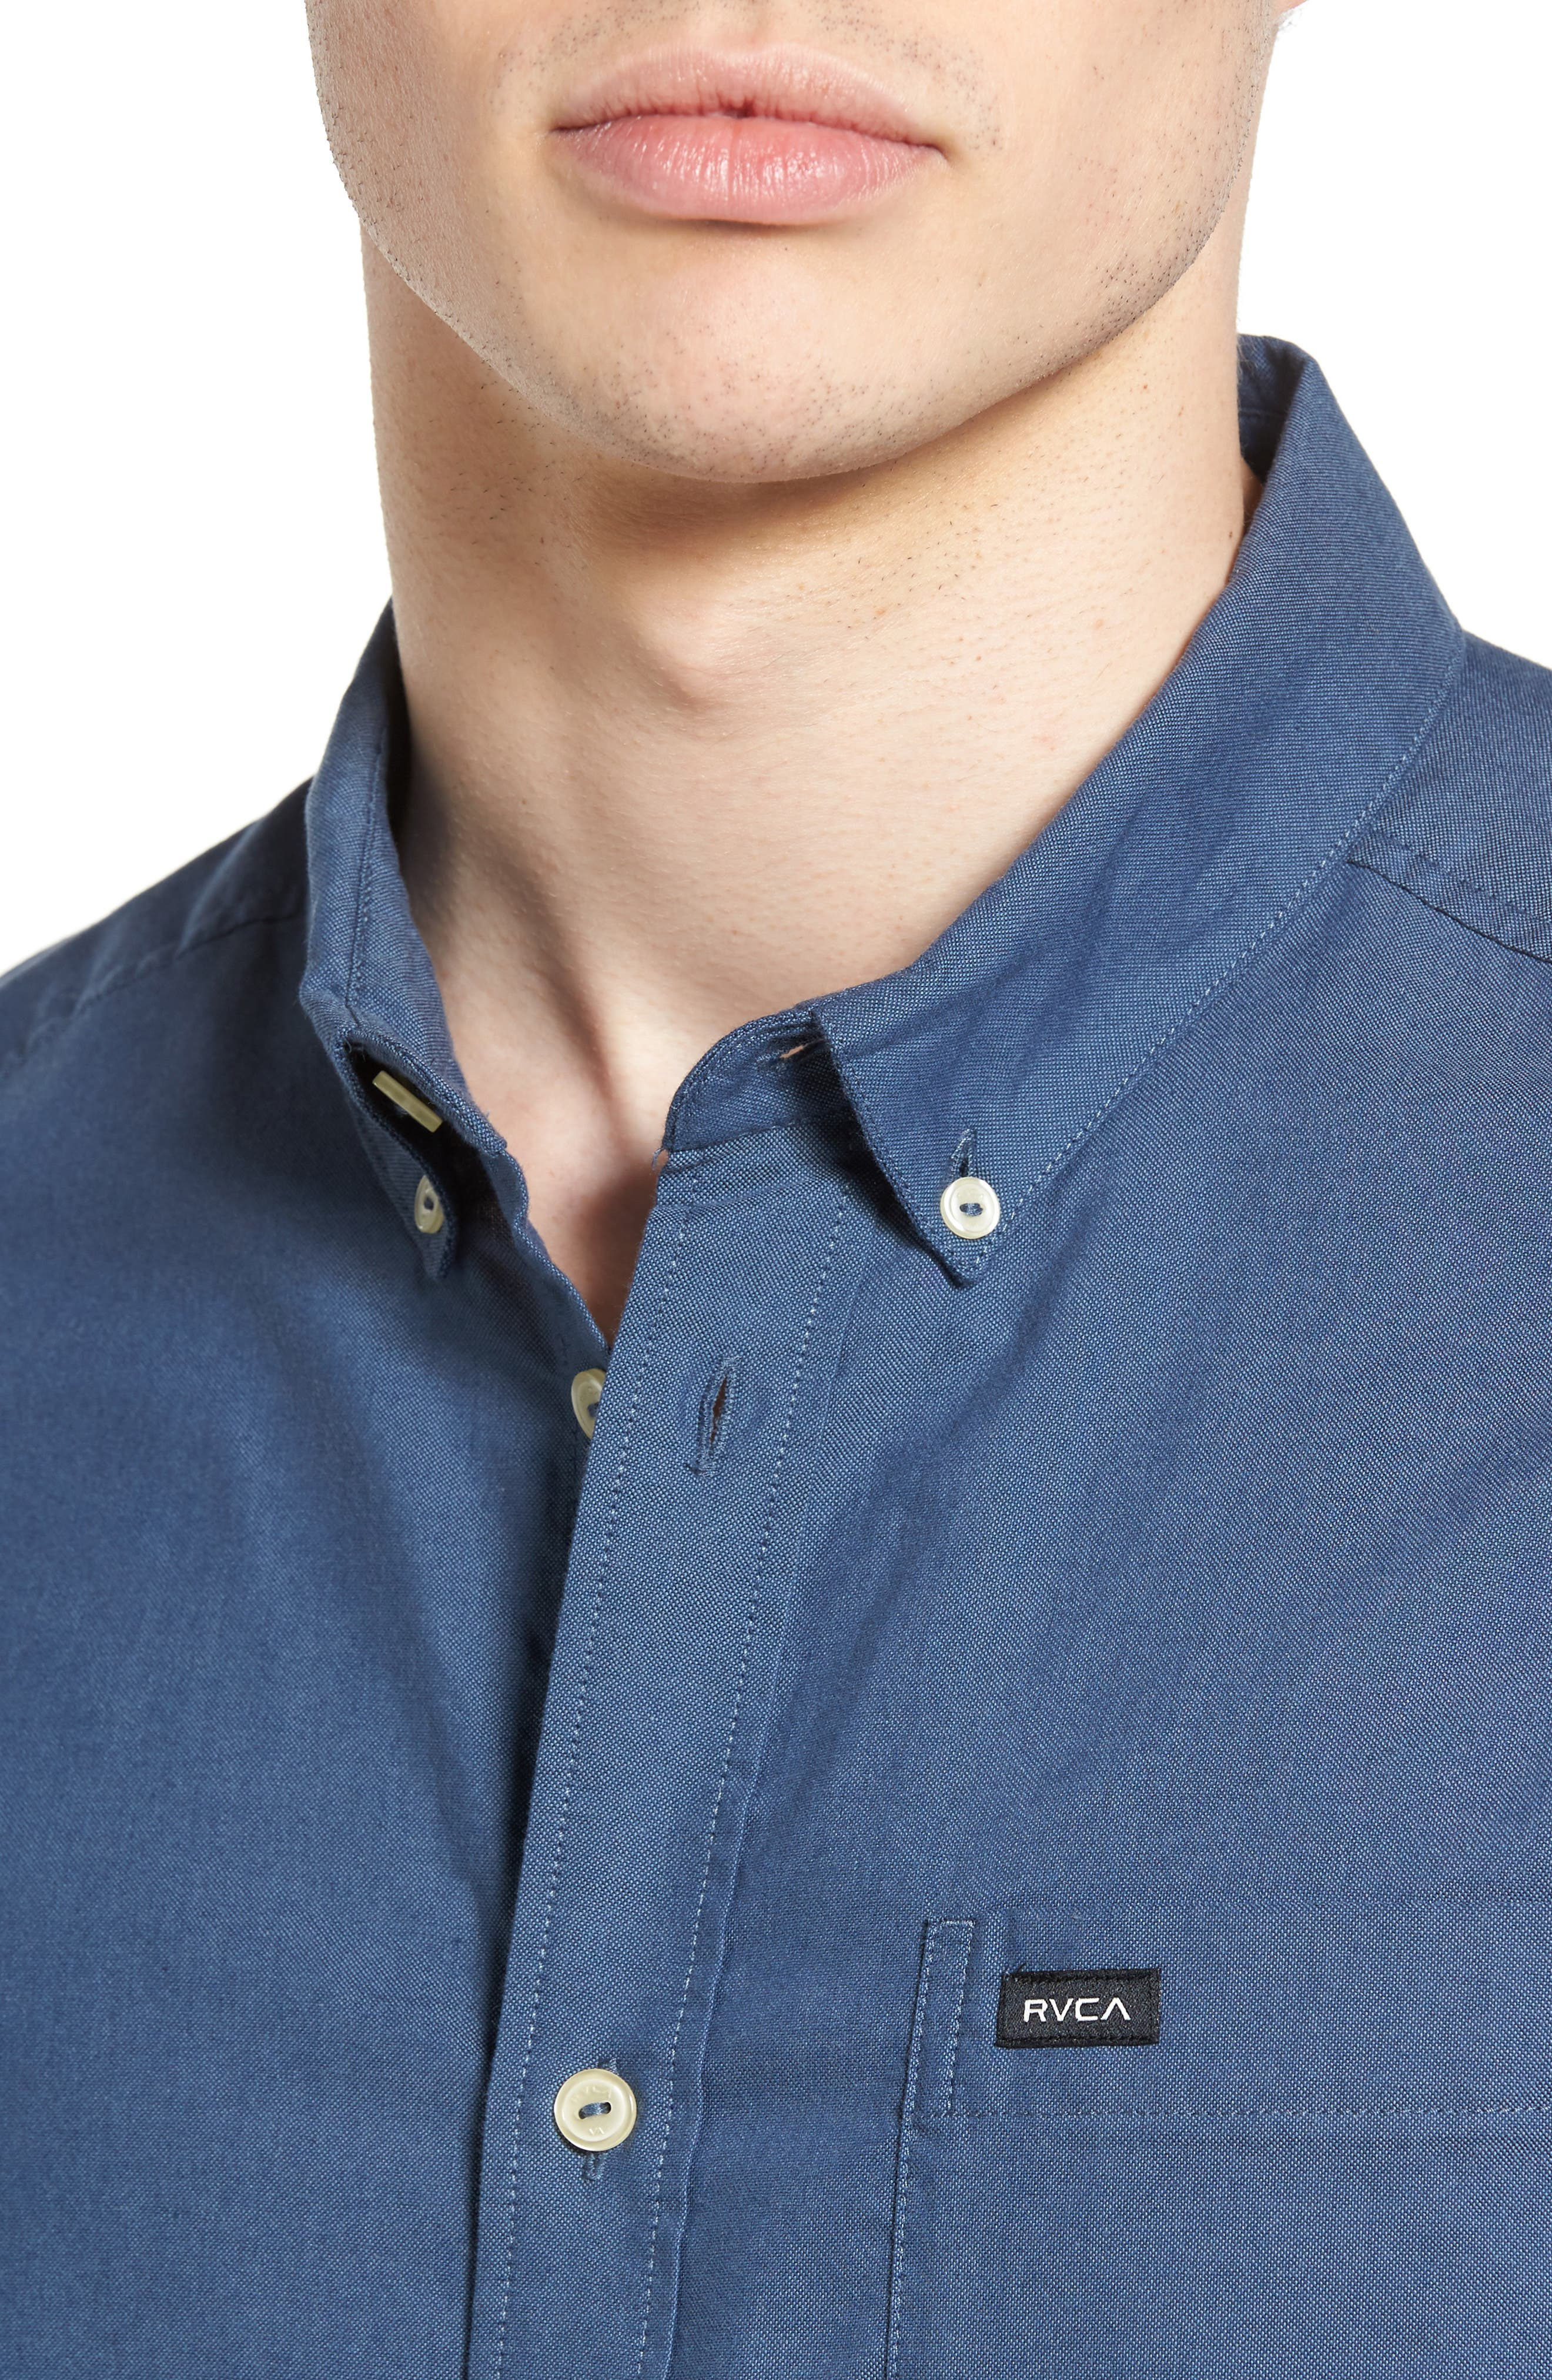 'That'll Do' Slim Fit Short Sleeve Oxford Shirt,                             Alternate thumbnail 4, color,                             434